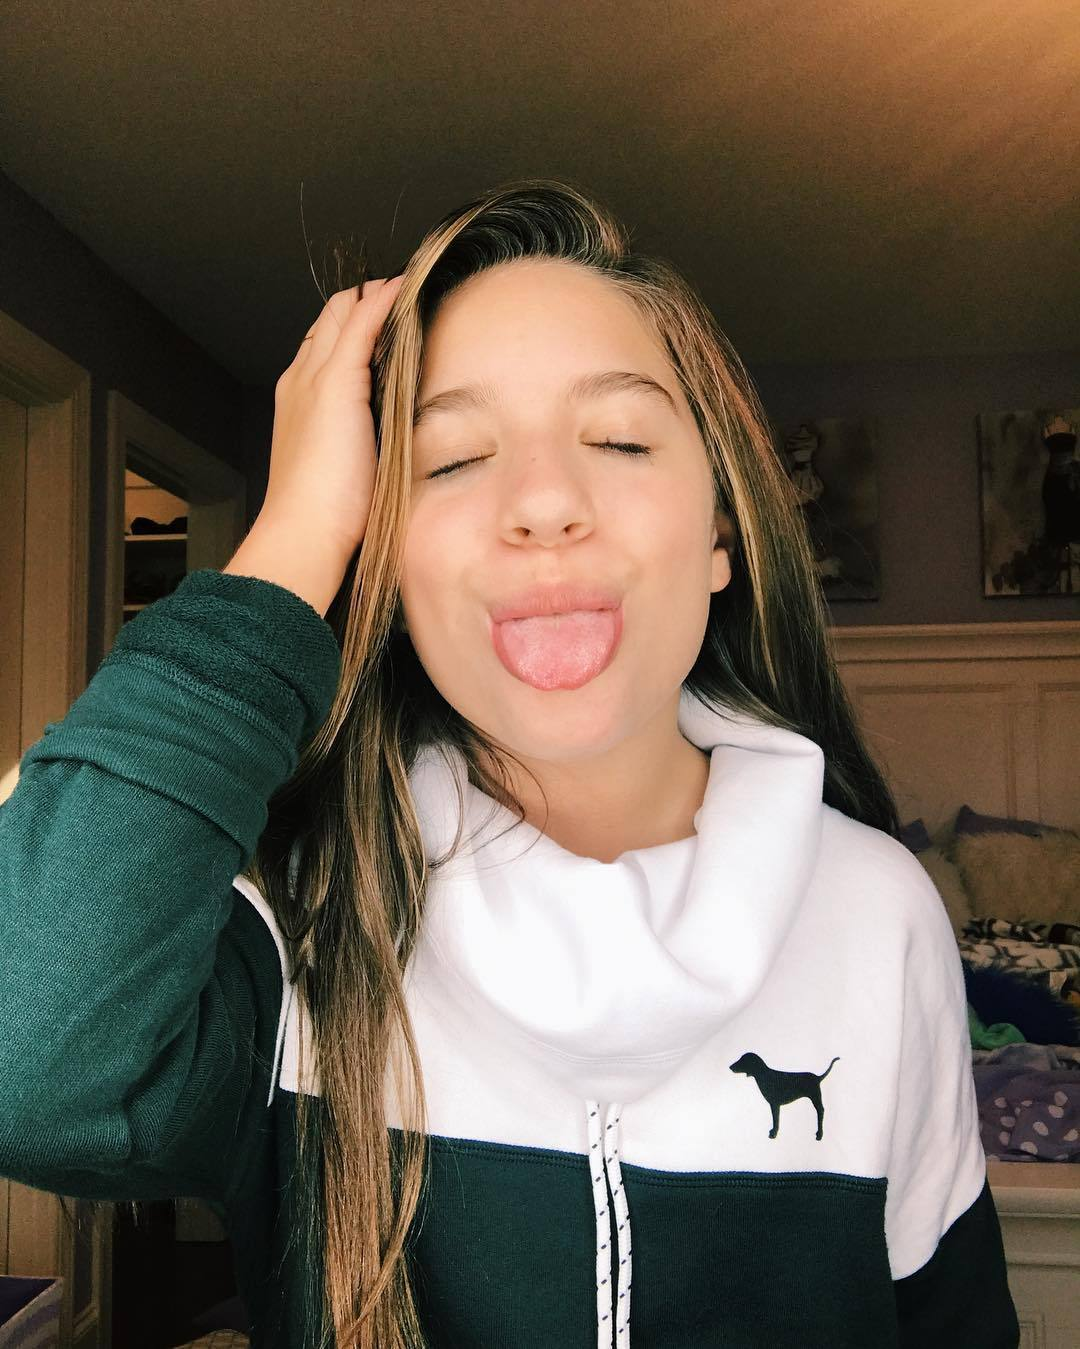 Seniors looking for friends